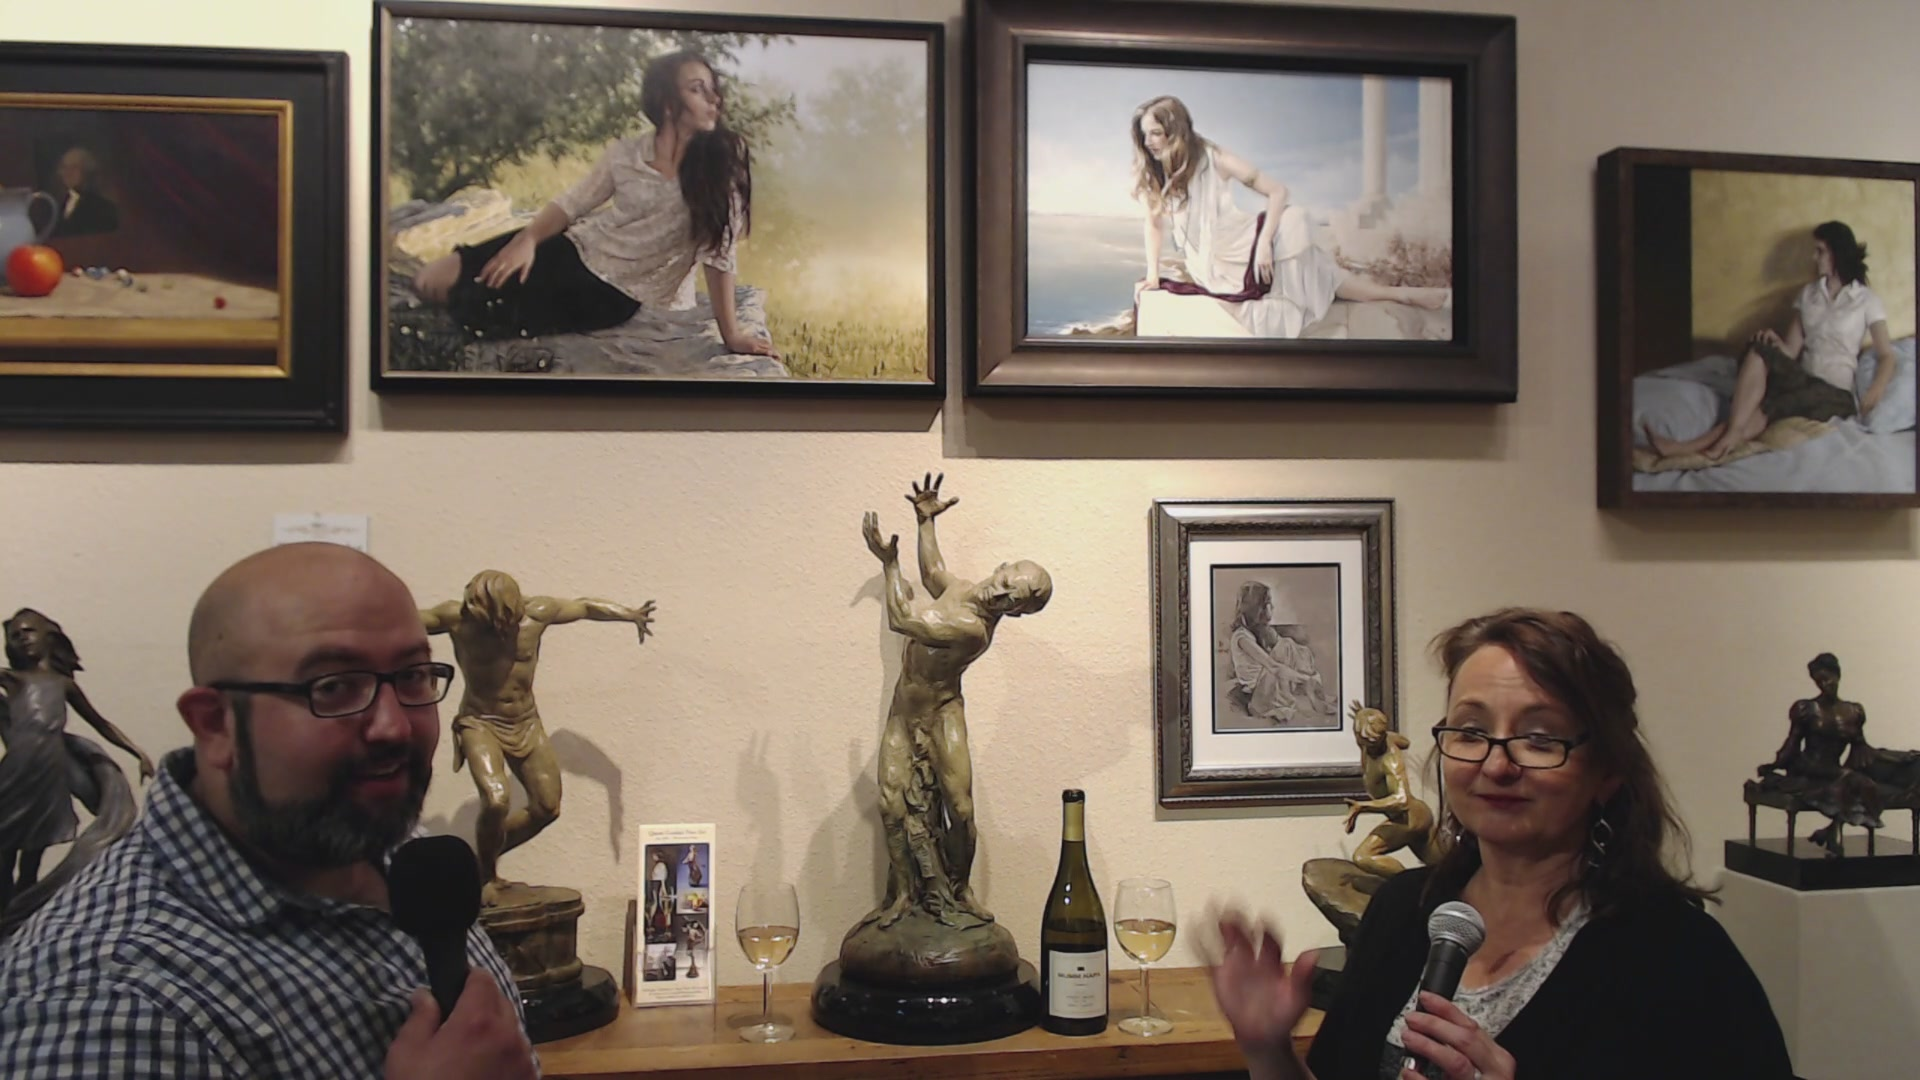 What can paintings and art do for your life? What's your favorite work of art? Today I'll be chatting with Linda Cordair from @quentcordair fine art. Ask her questions about @OCON2019 and her special showing as well as any art and culture related que